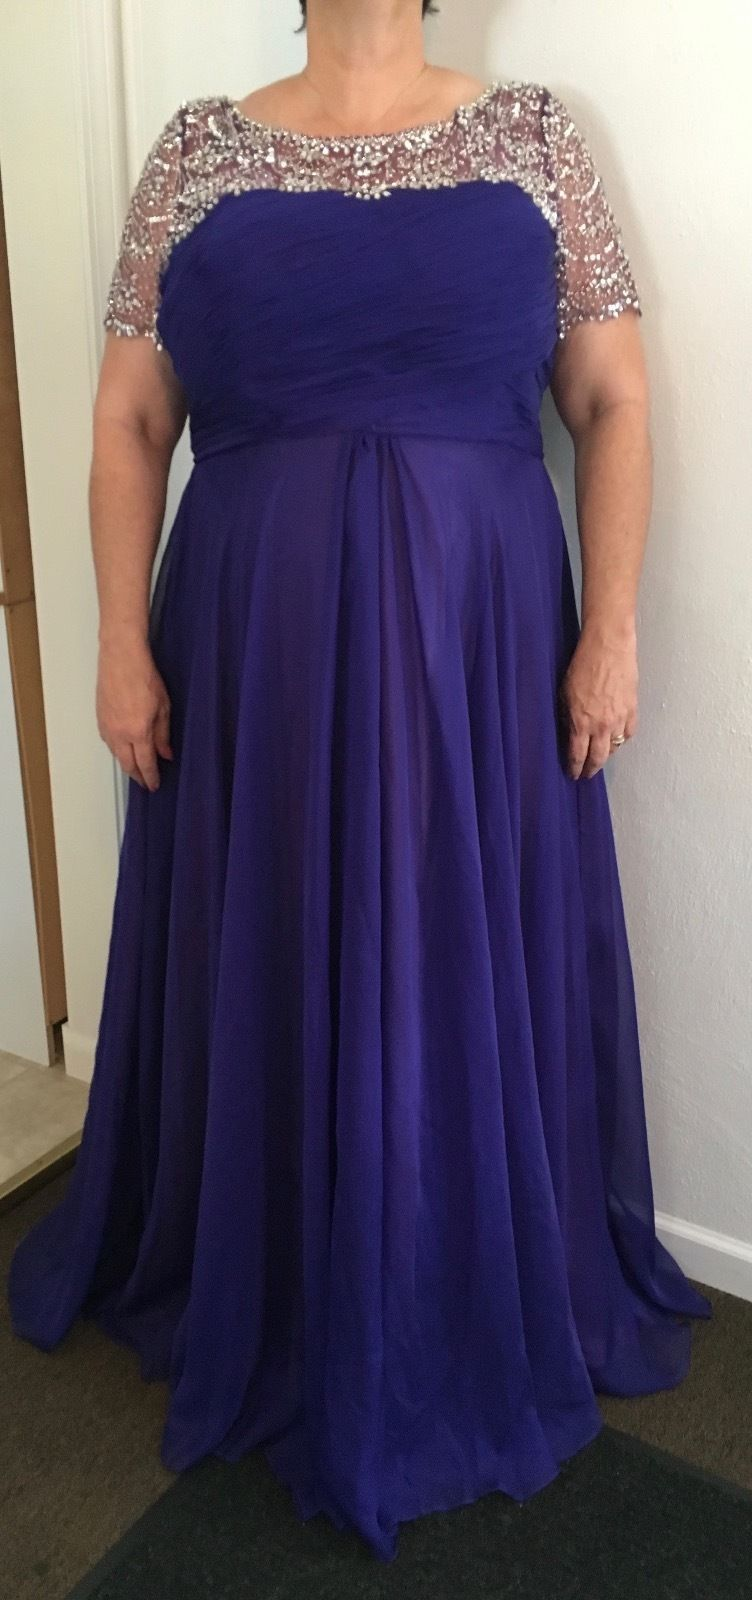 Plus size mother of the bride dresses by darius dress designs